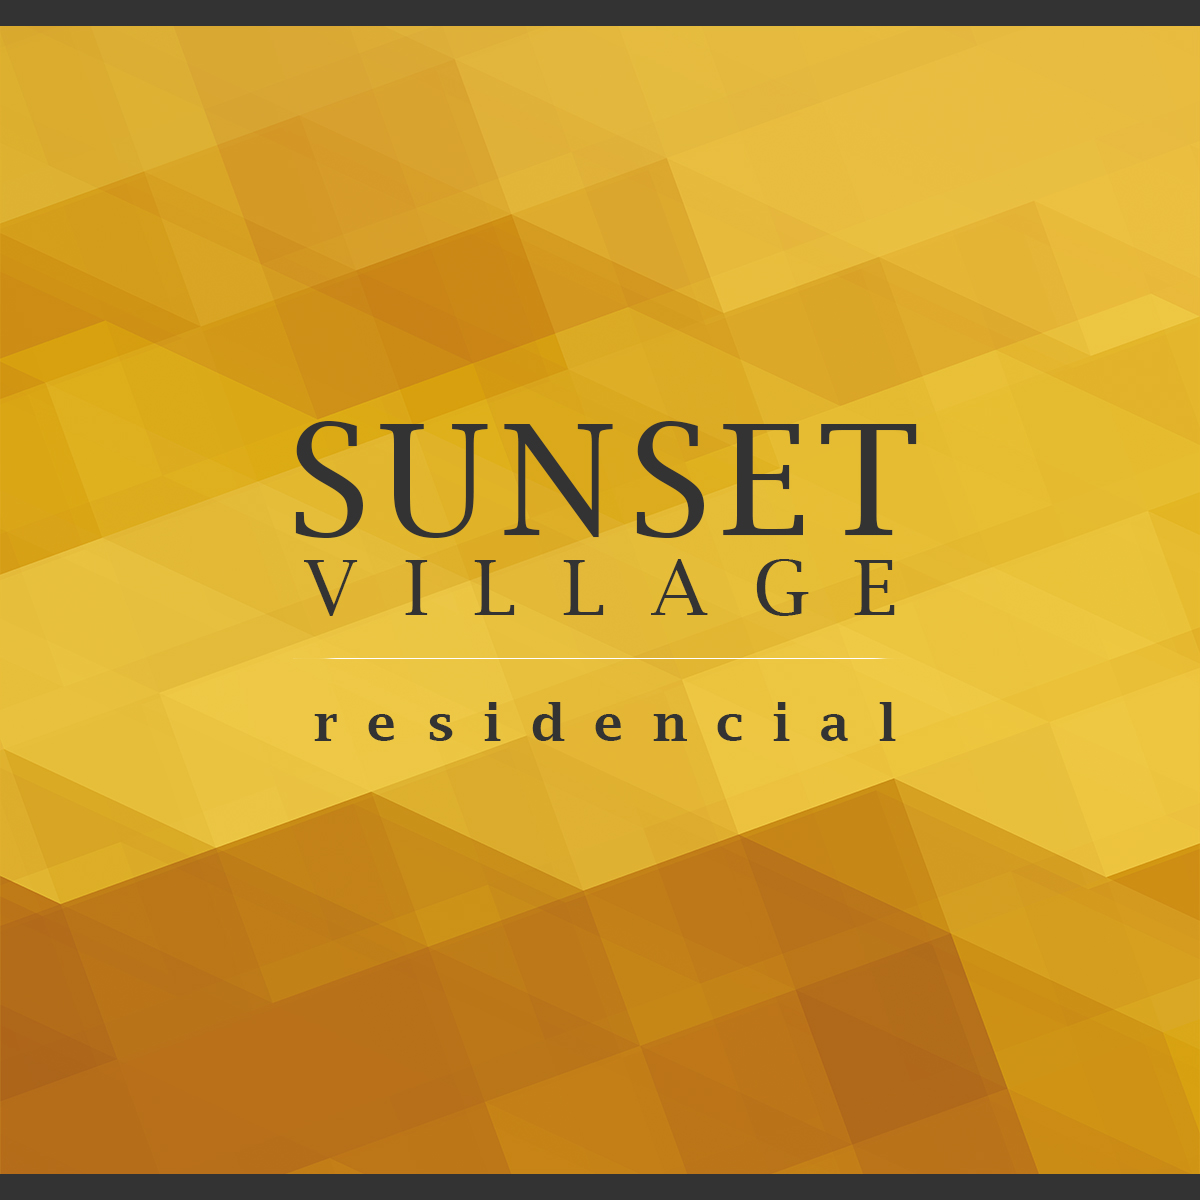 promo residencial sunset village